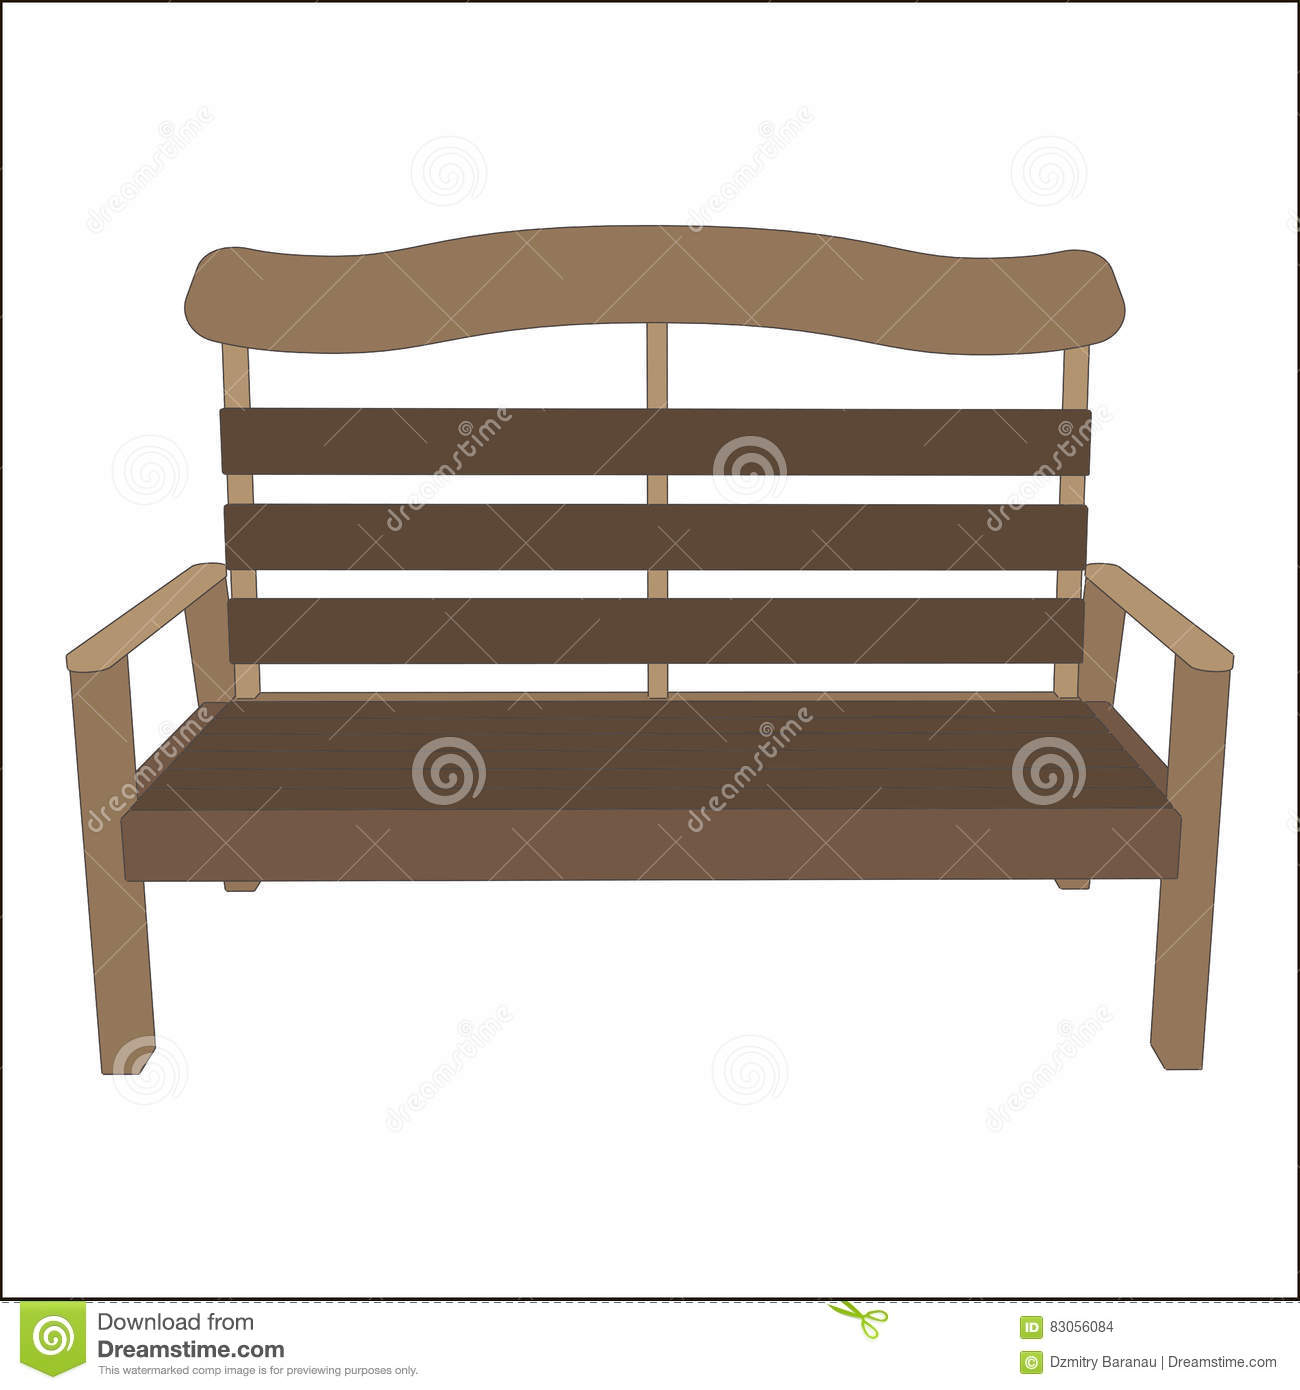 Outdoor Vector Classic Street Urban Bench Wooden Style